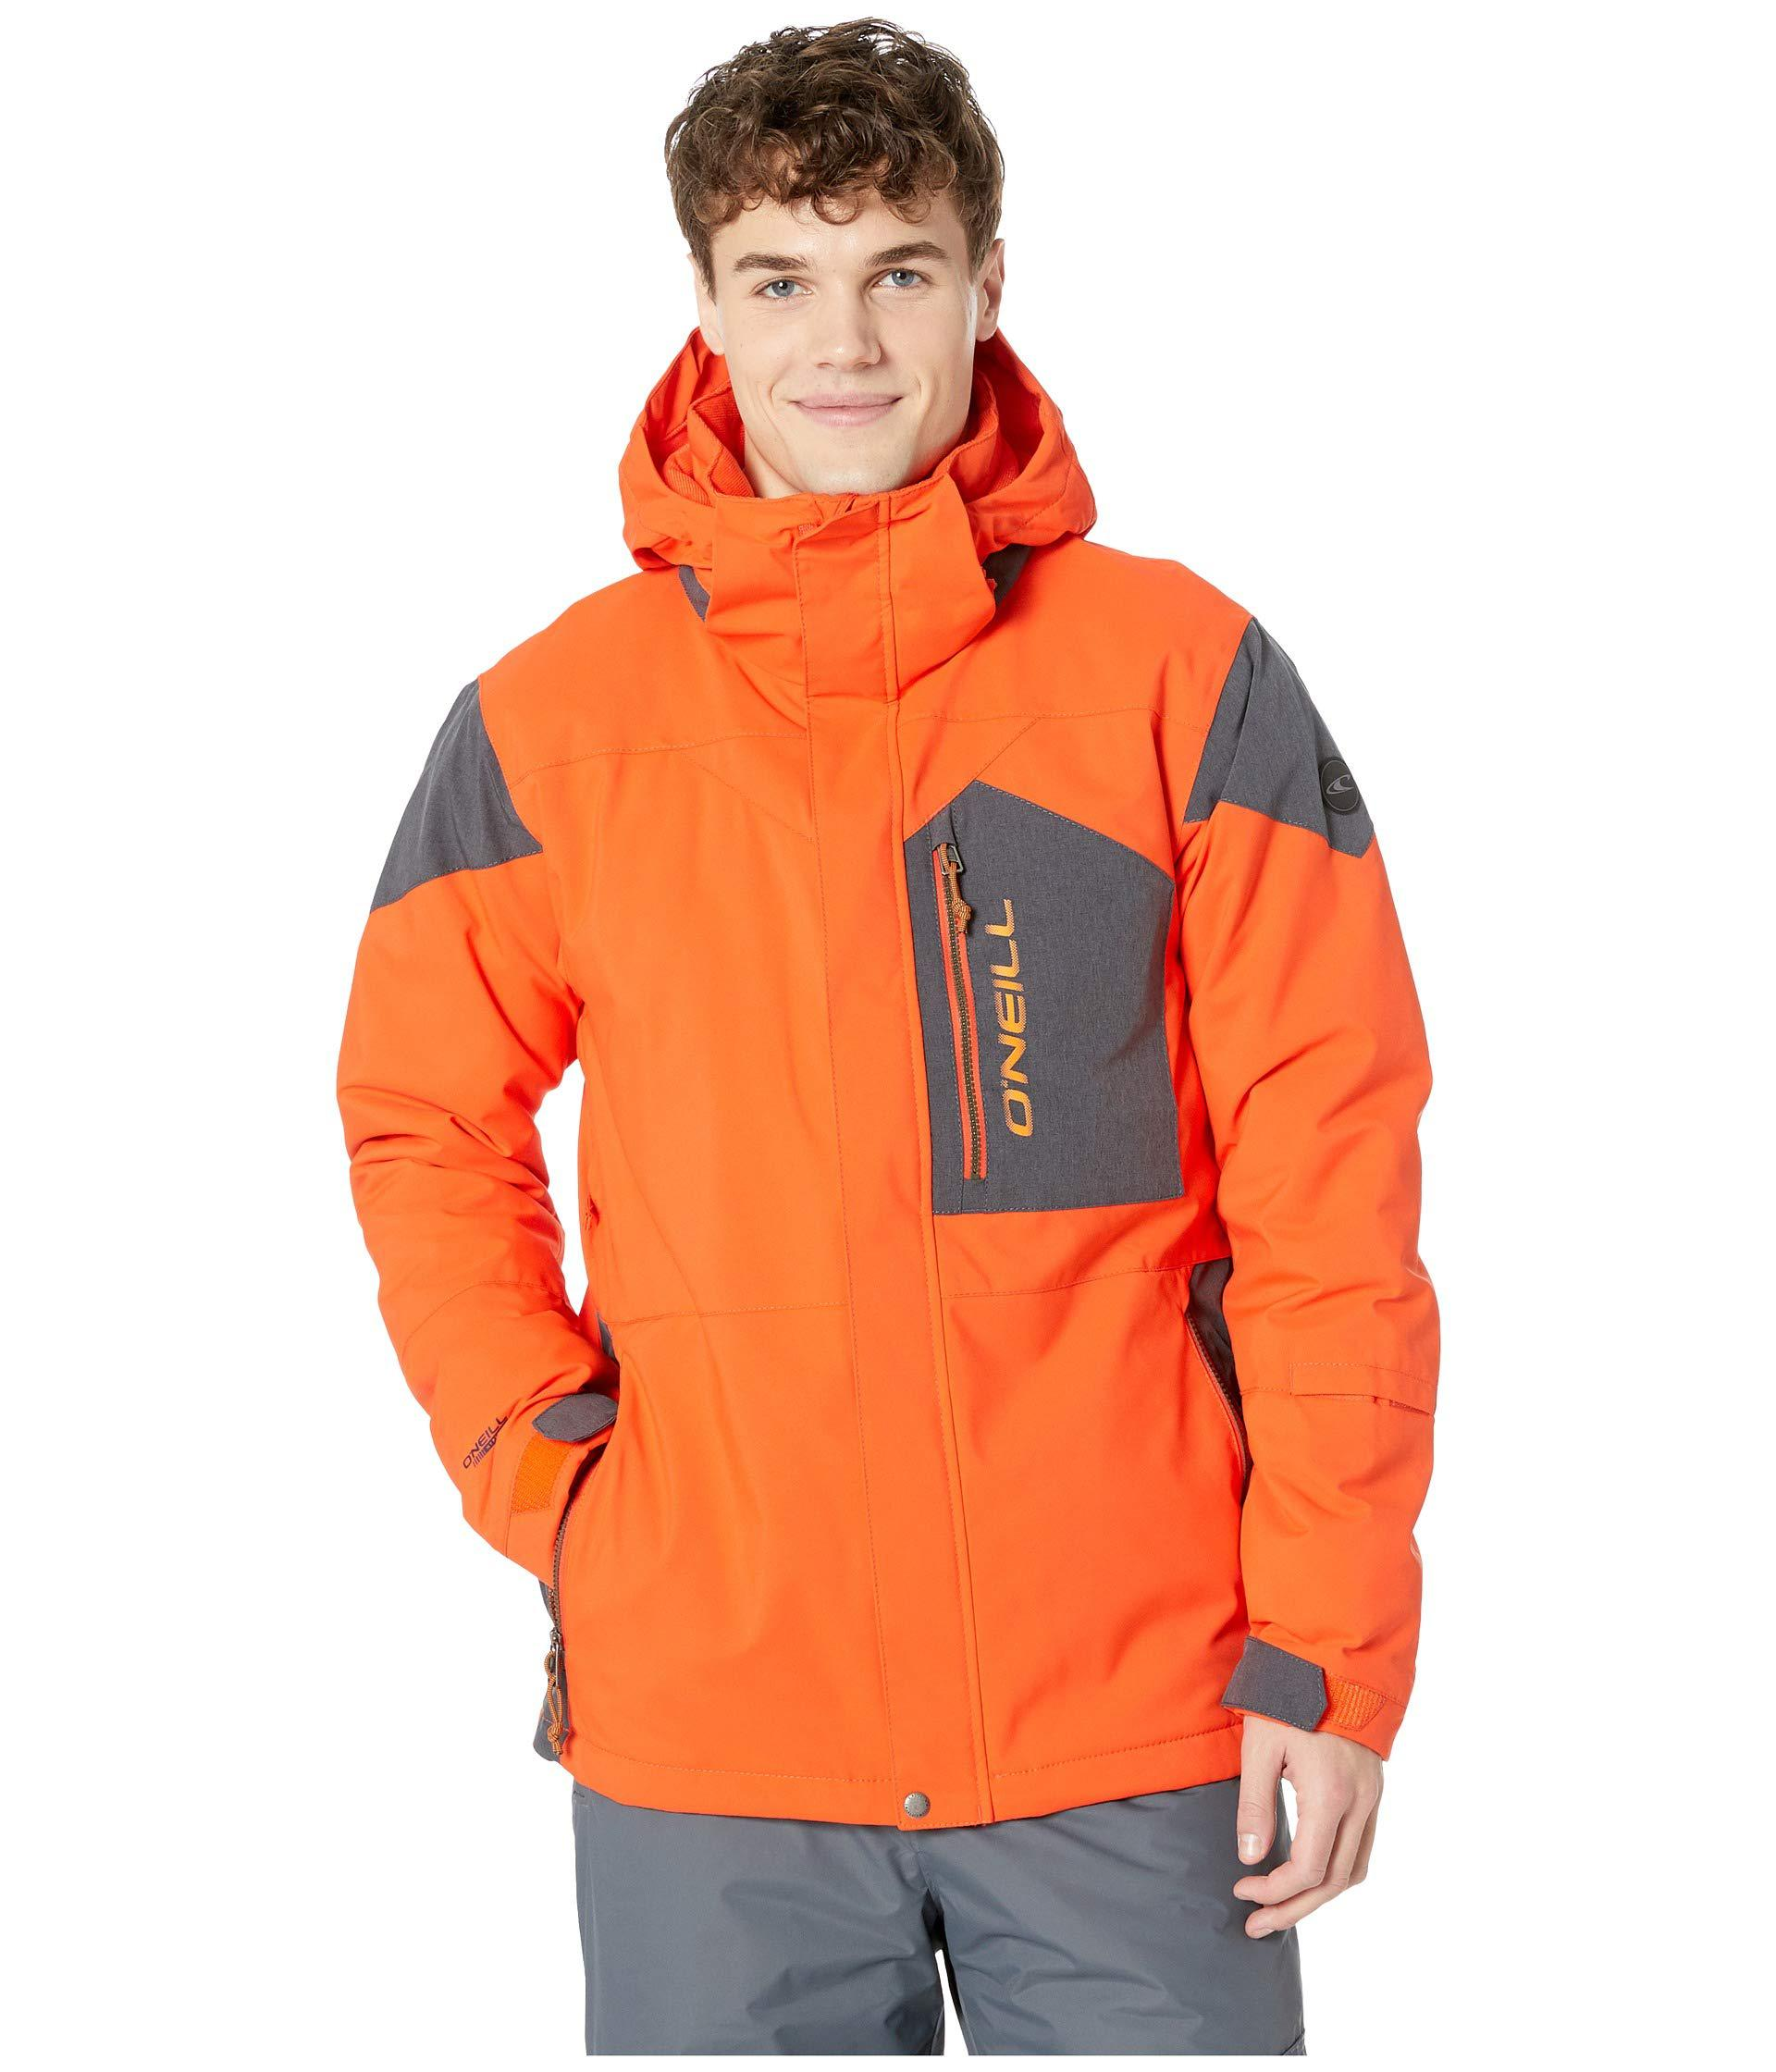 Infinite O'neill Sportswear Blue Orange dresden Jacket qgEa0g